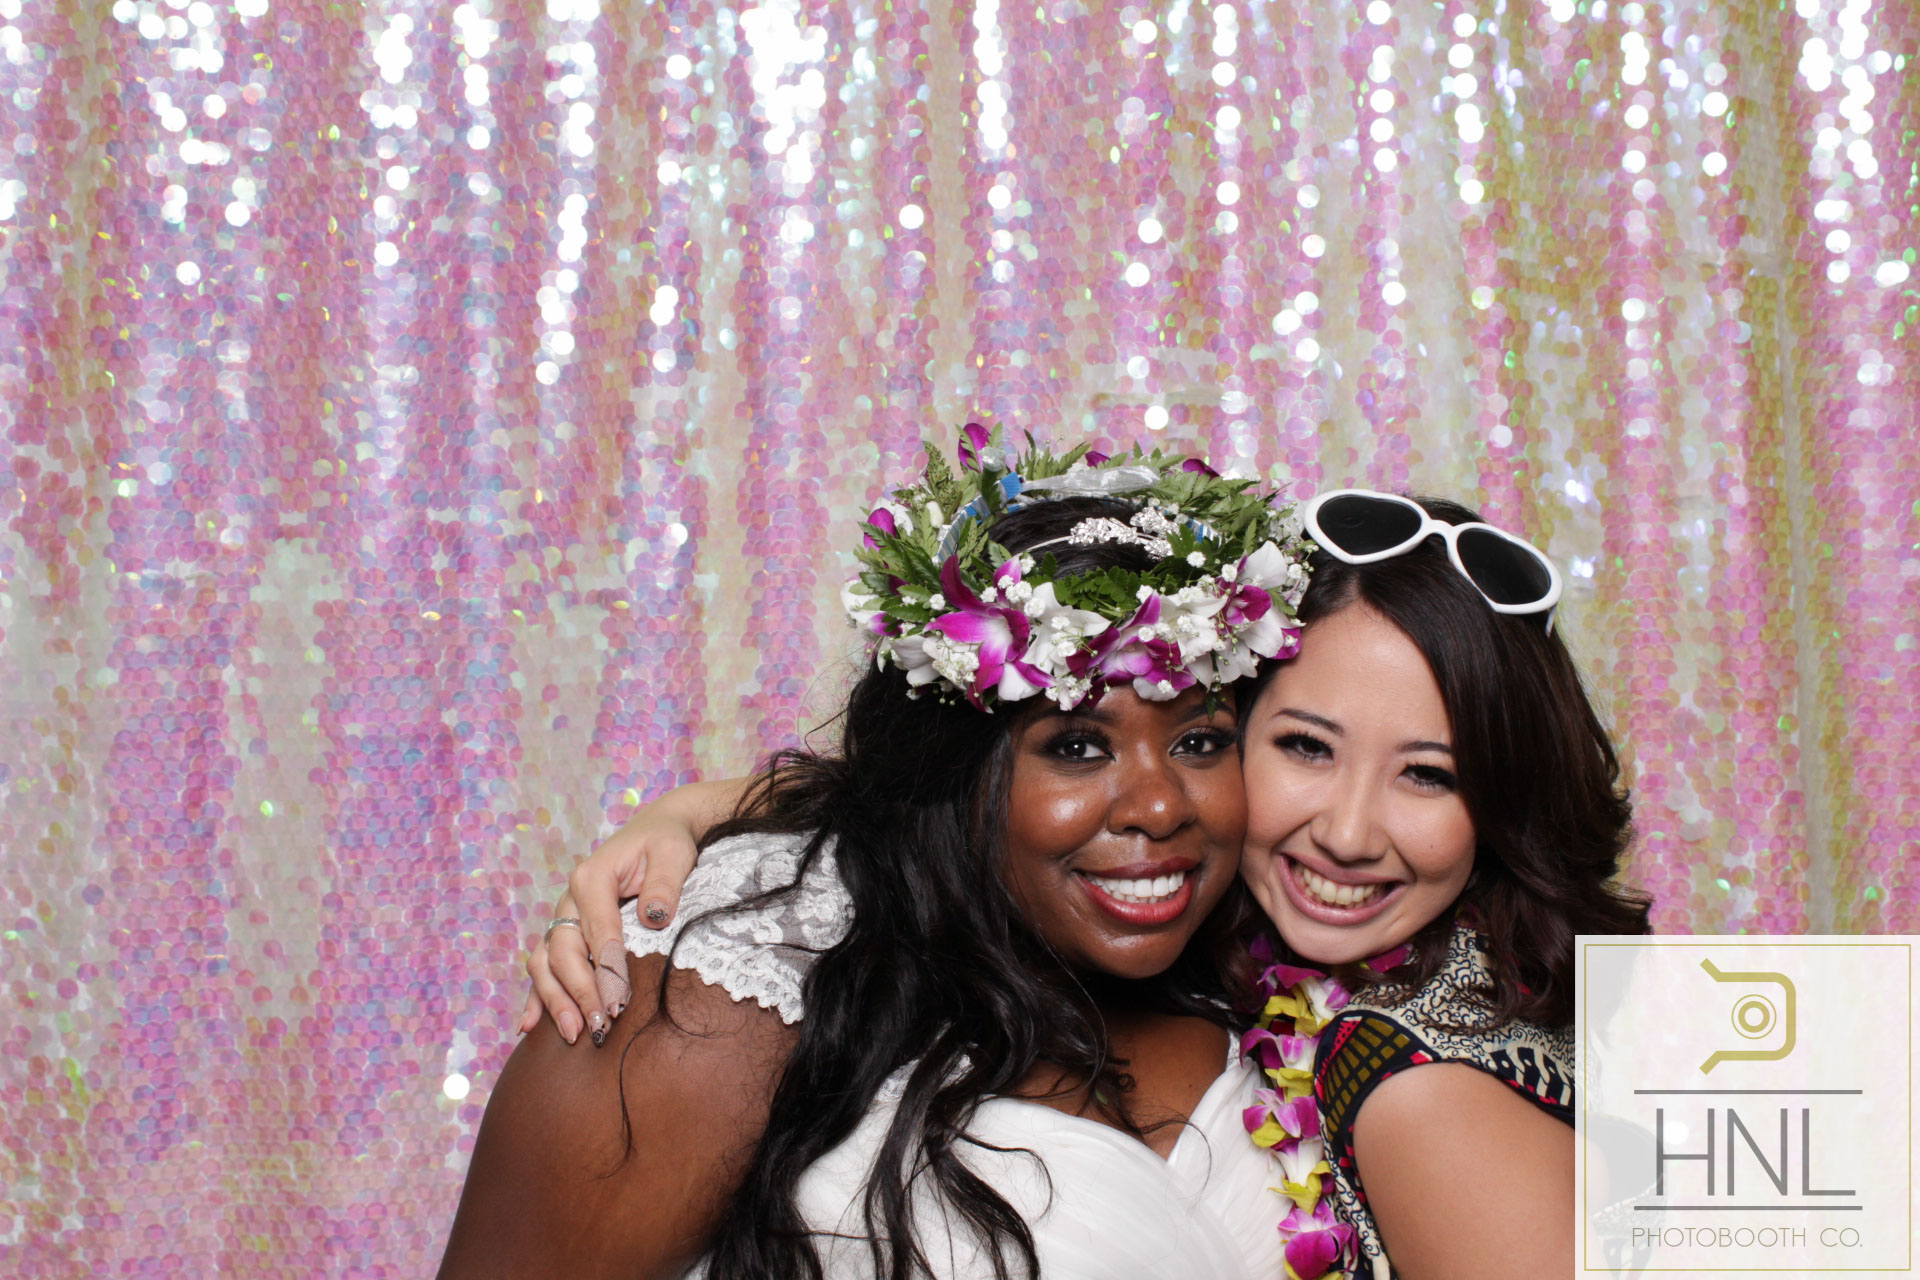 Yemi and Yang Wedding Photo booth Hiltion Hawaiian Village Resort Waikiki Oahu Hawaii -152.jpg